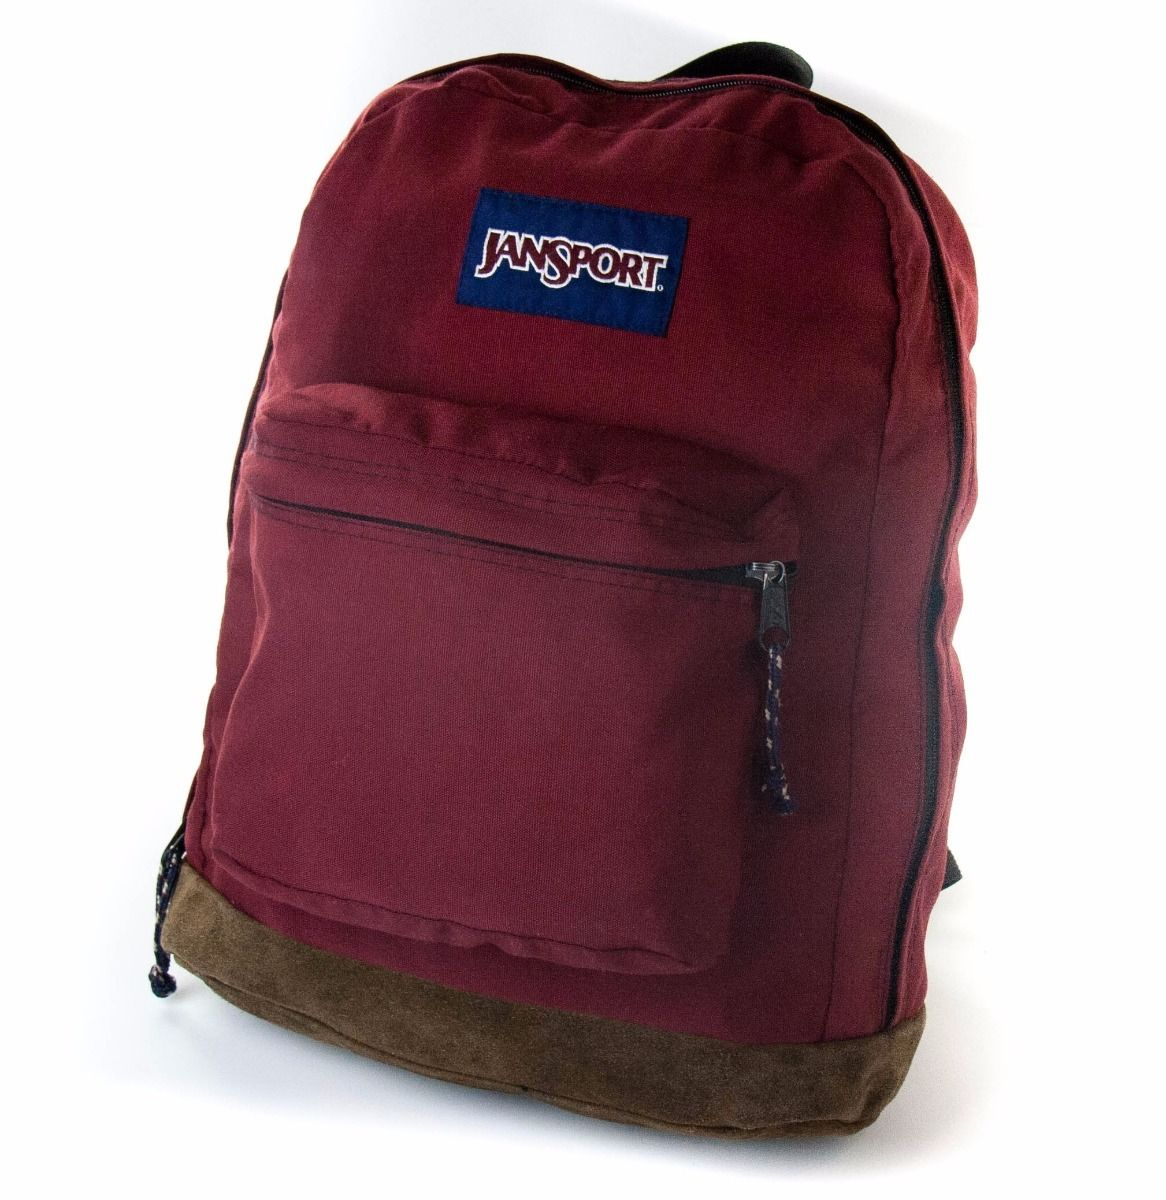 Jansport Backpack Maroon izZwEBJ9